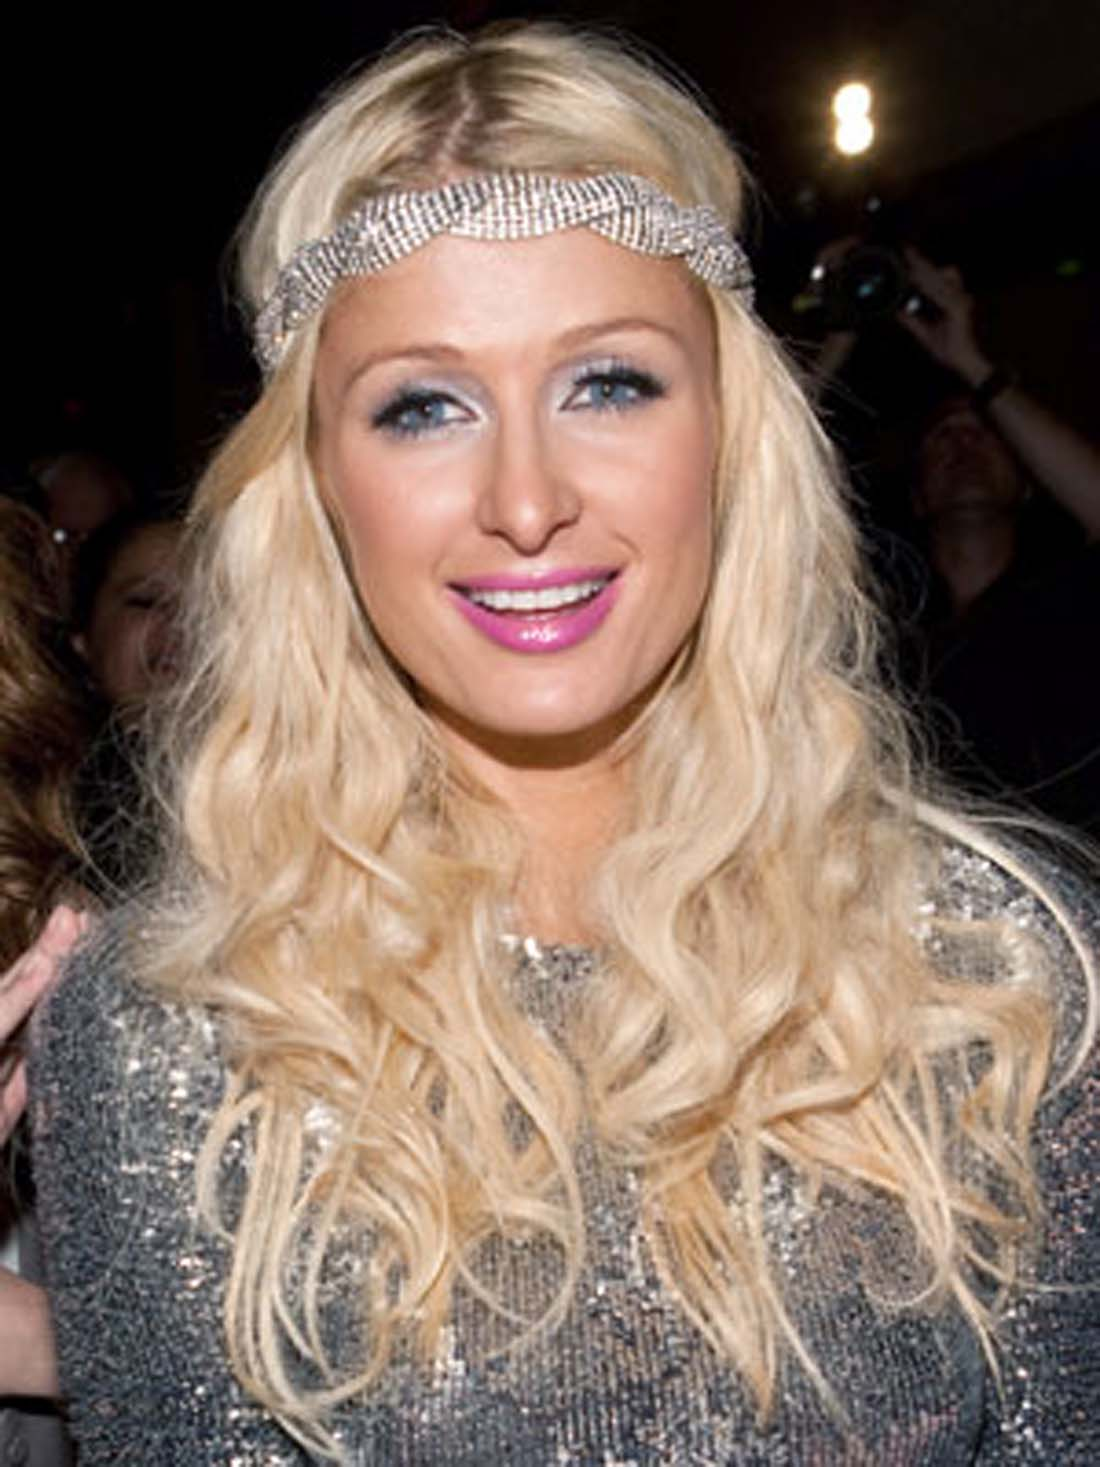 sparkly-headband-at-bouncy-waves-hairstyle-of-paris-hilton-more-for-headband-hairstyles-v-cut-and-u-cut-hairstyles